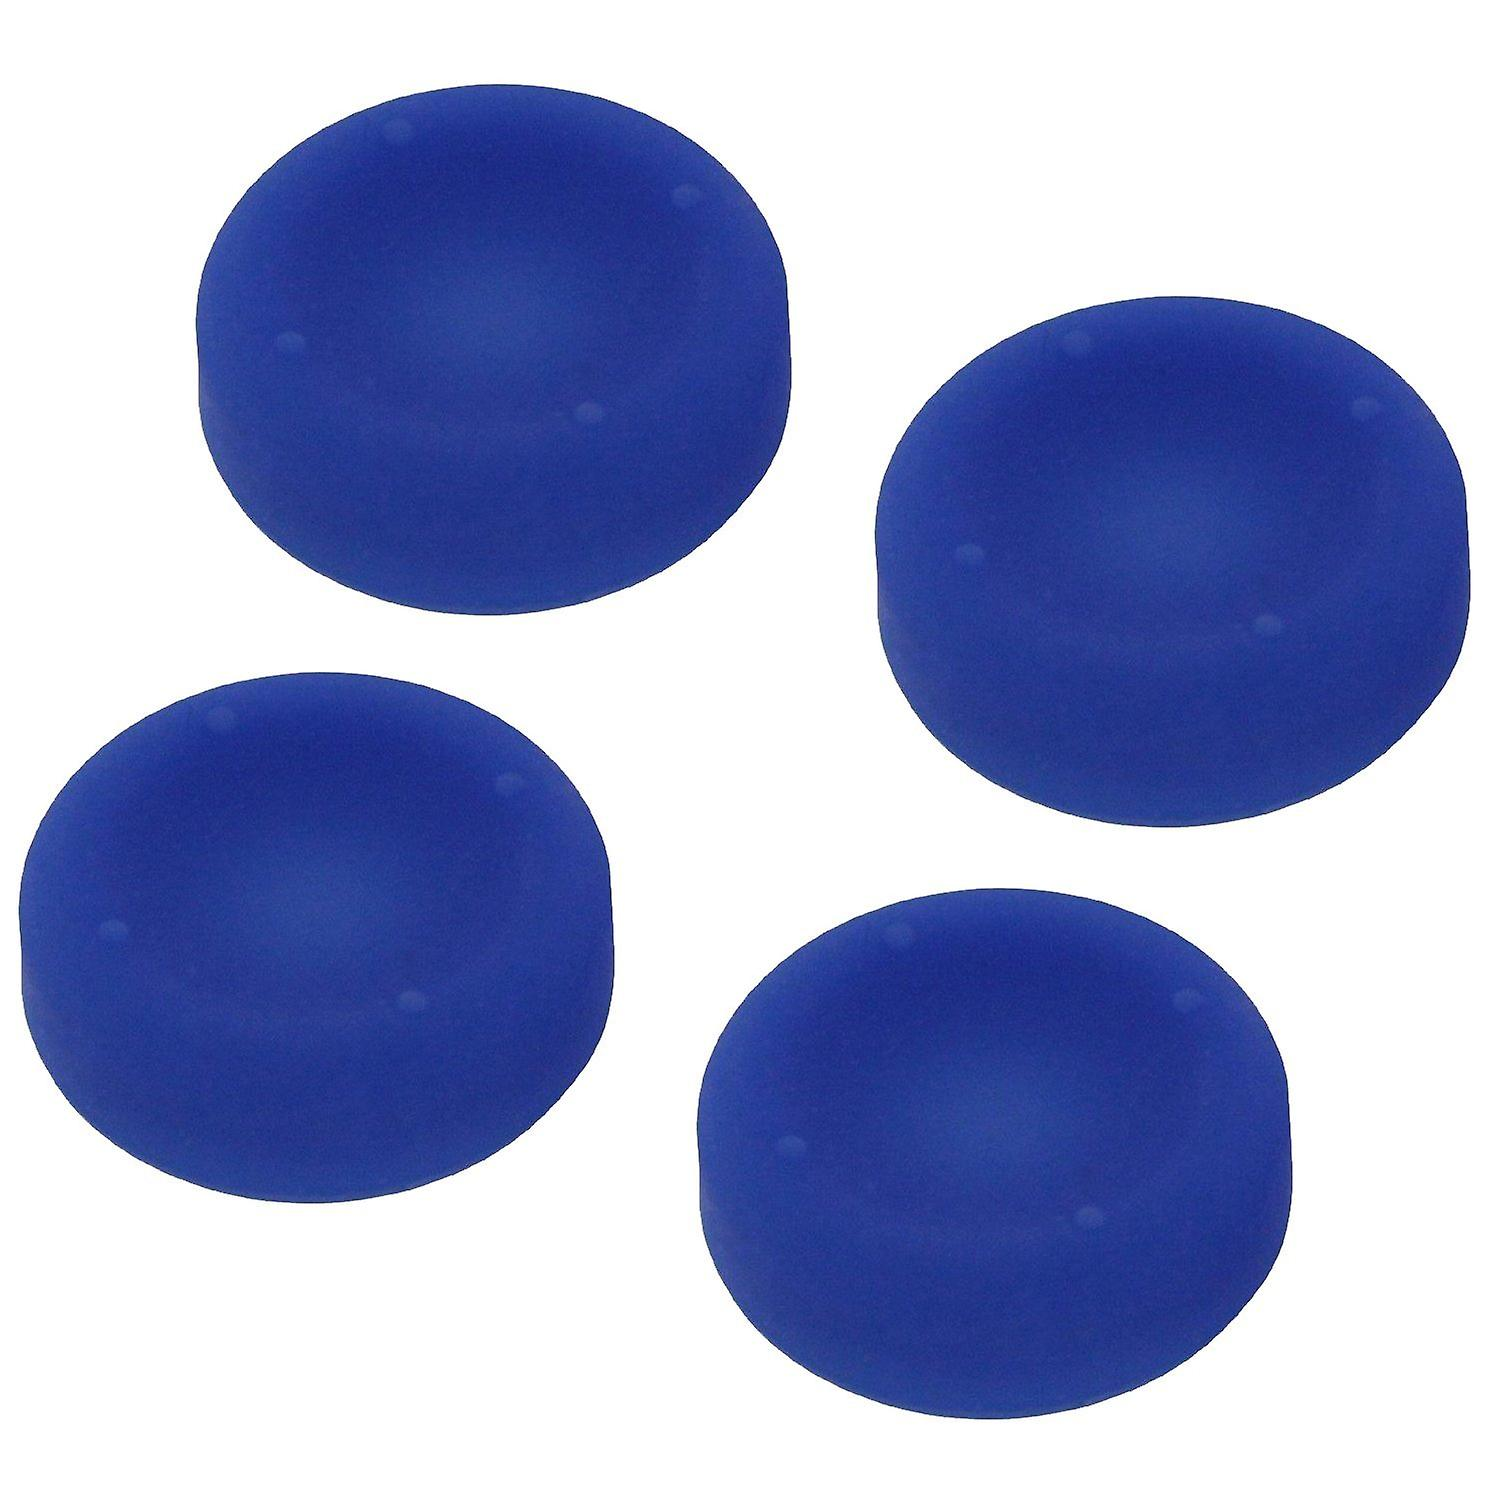 Concave soft silicone thumb grips for sony ps4 controller analog sticks - 4 pack blue